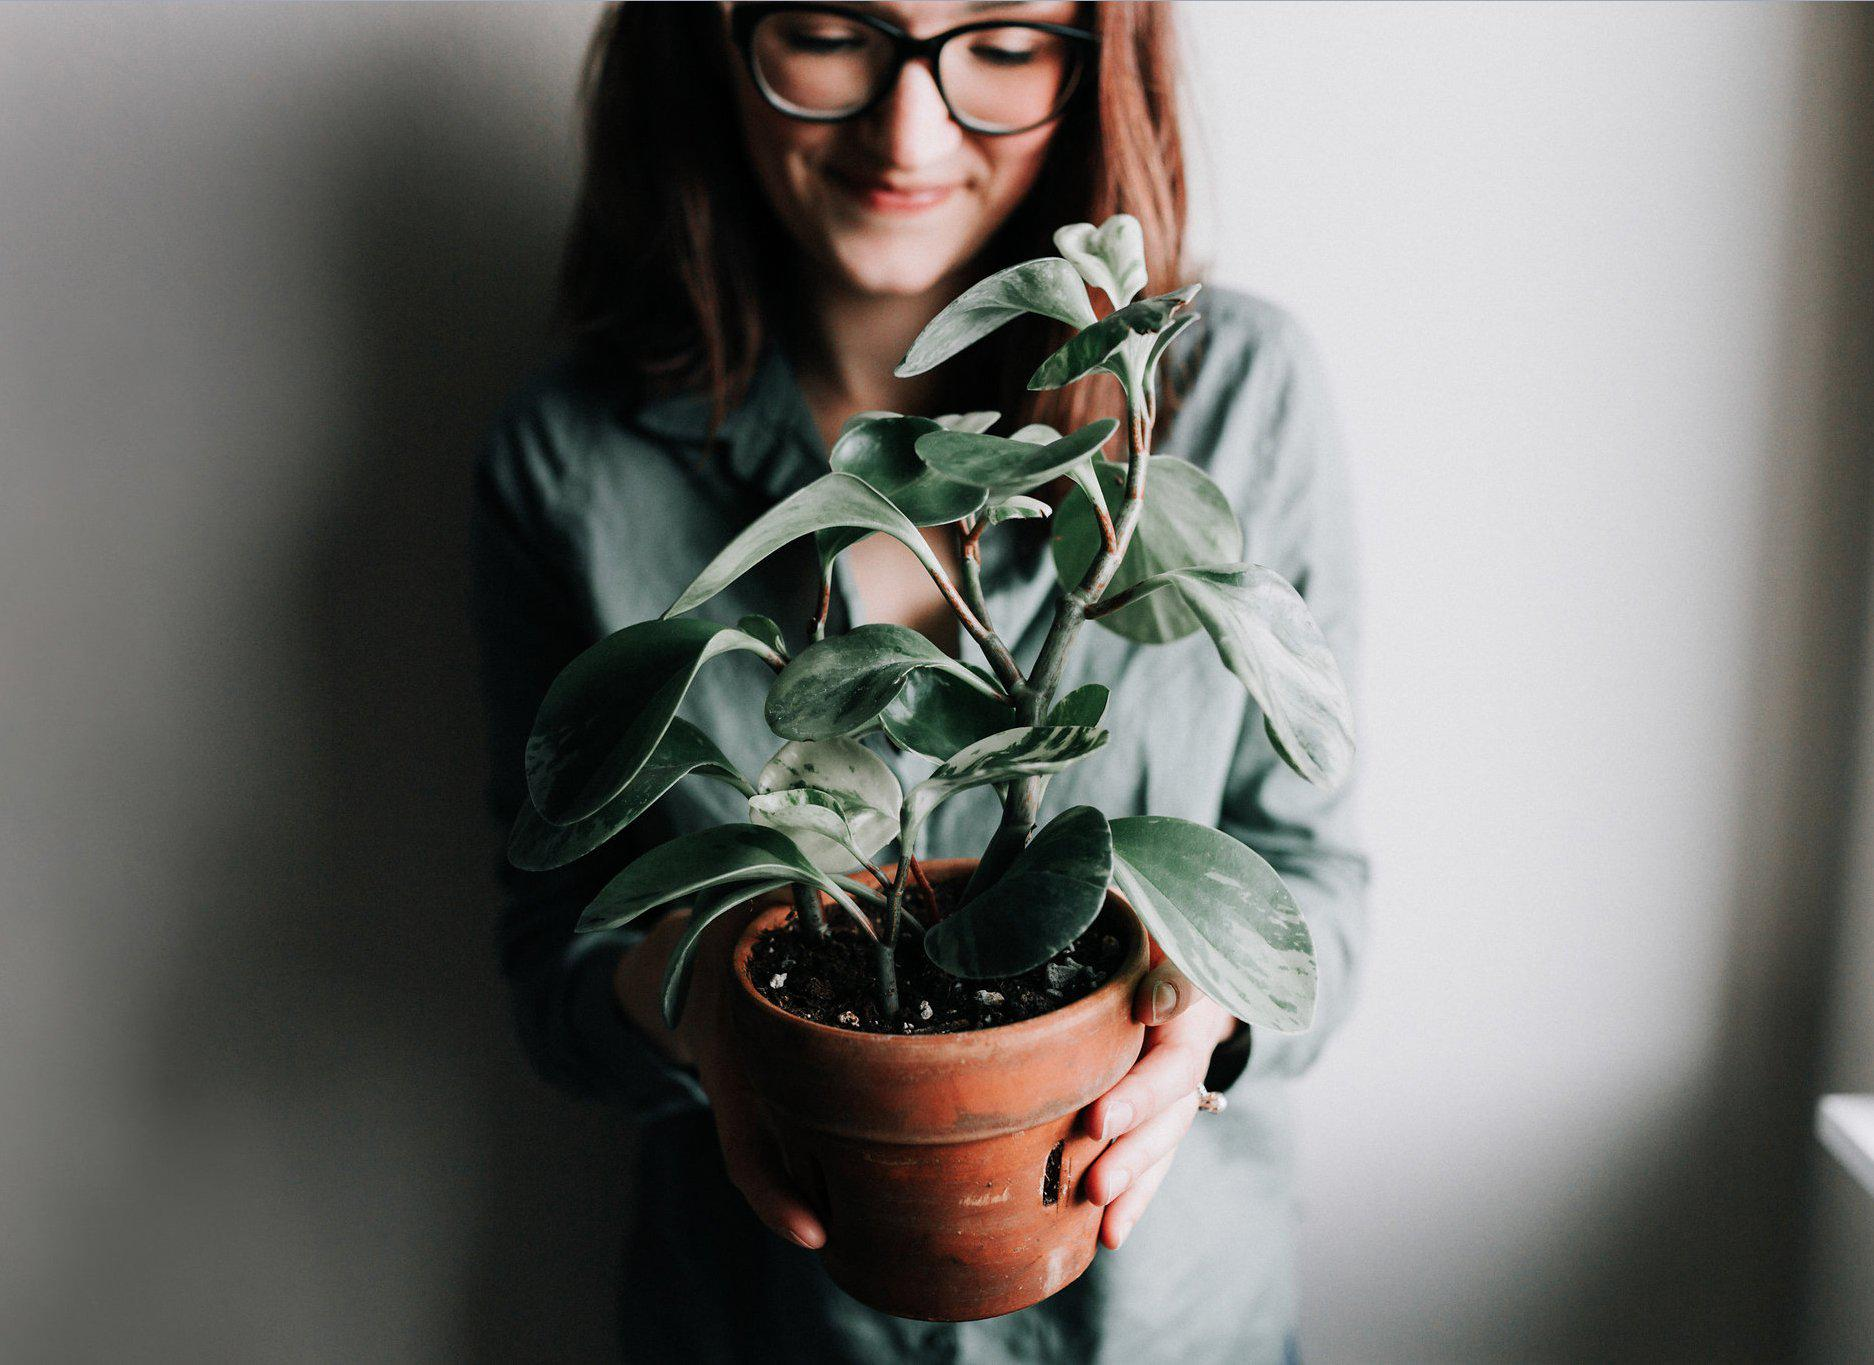 Top 3 Houseplants for Beginners (& How Not to Kill Them!) | Guest Contributor Dusty Hegge of Revive Nursery